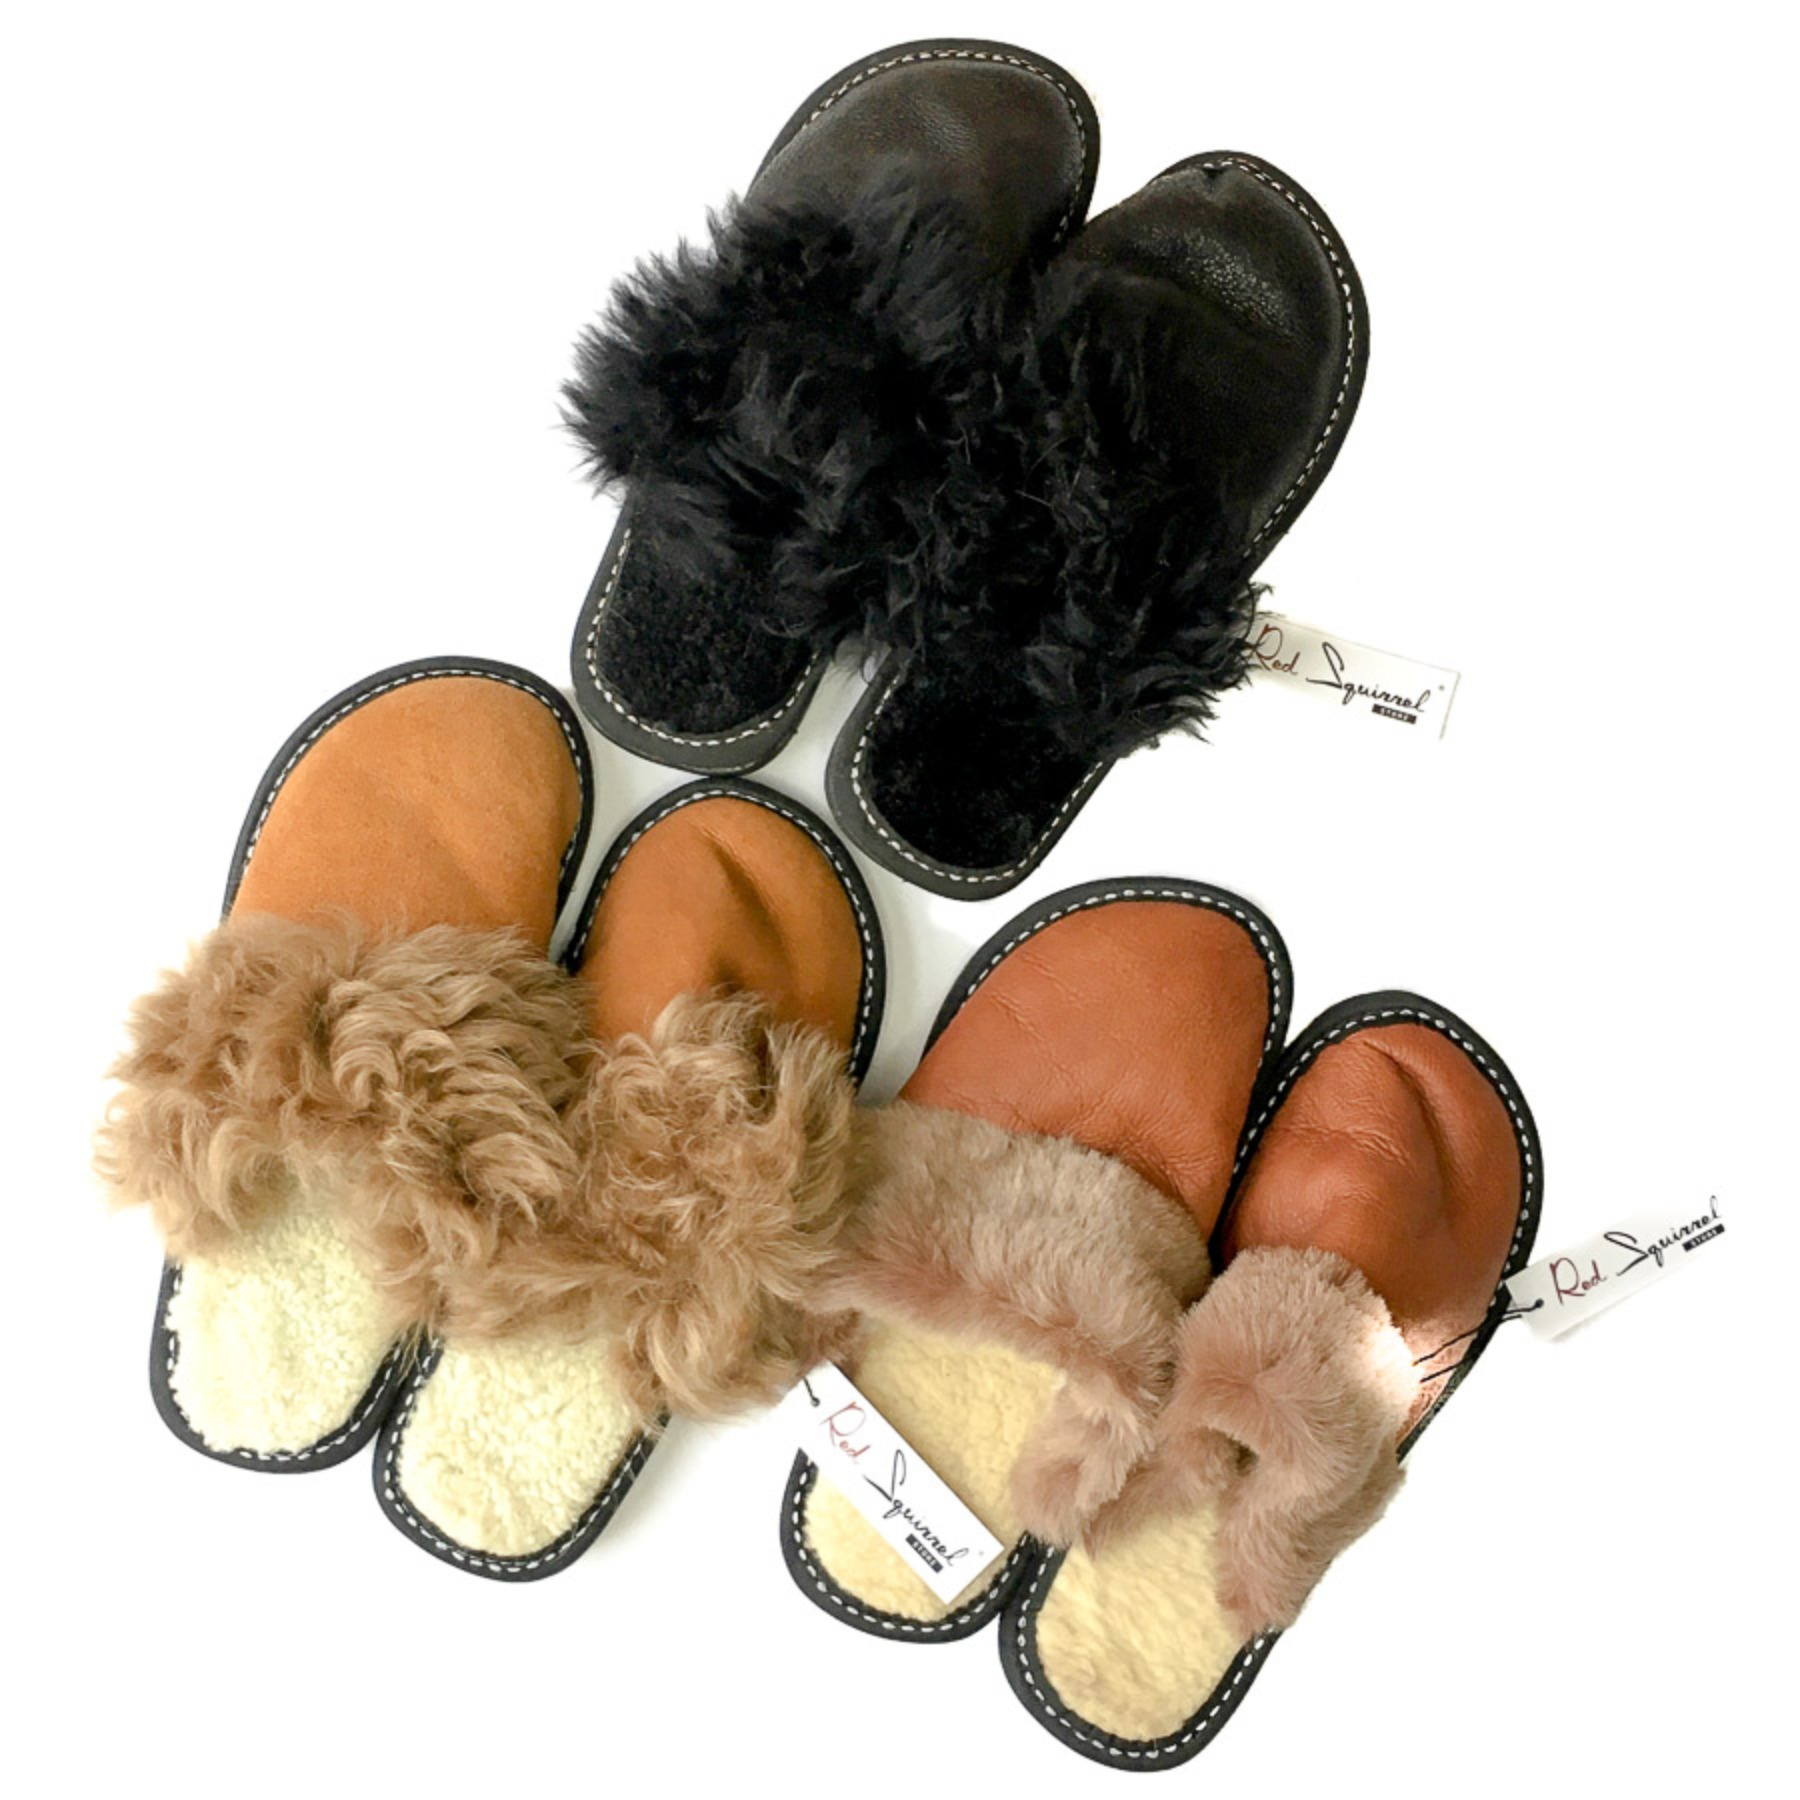 A Featured Product - Sheepskin Slippers